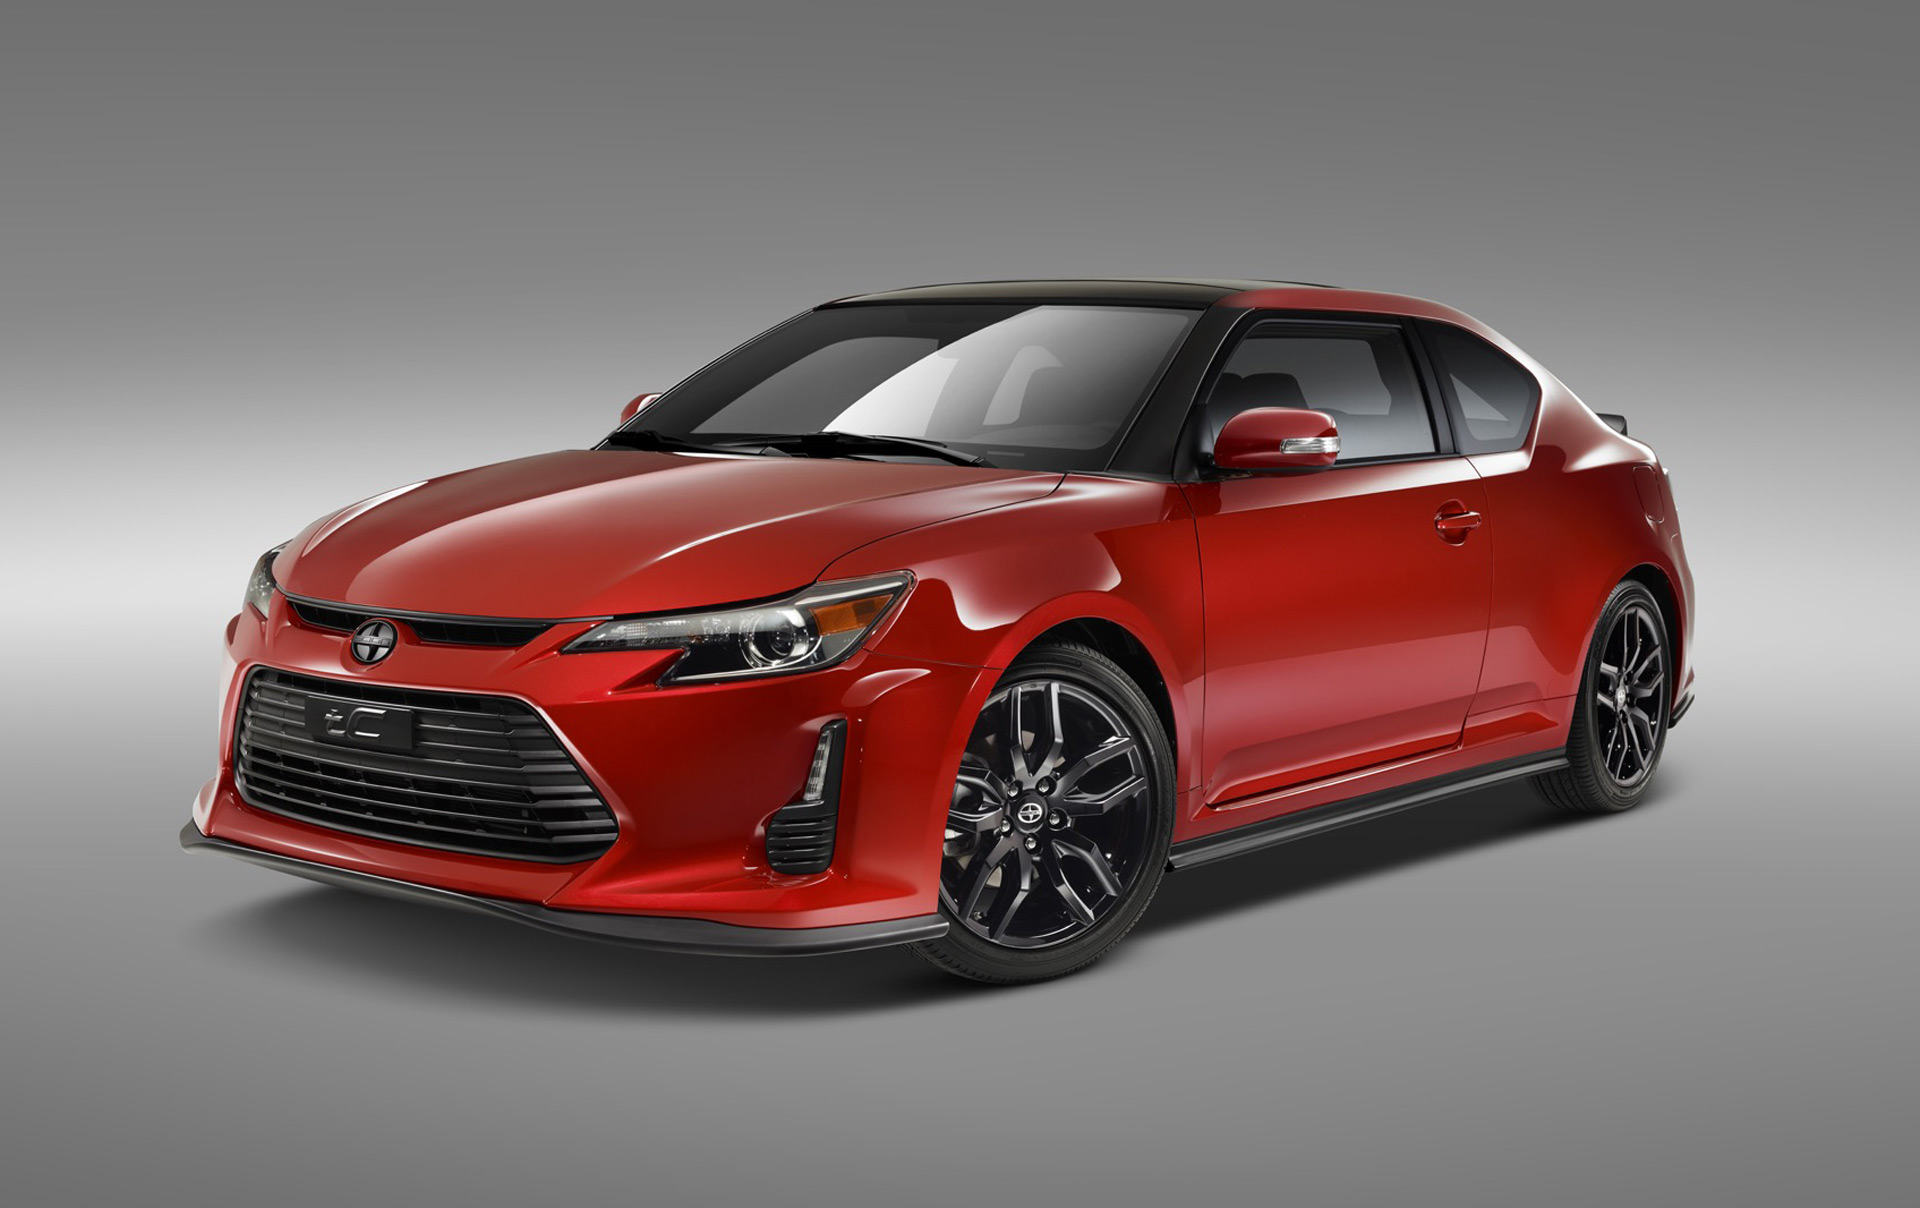 2016 scion tc goes out with tuner flair racy final. Black Bedroom Furniture Sets. Home Design Ideas